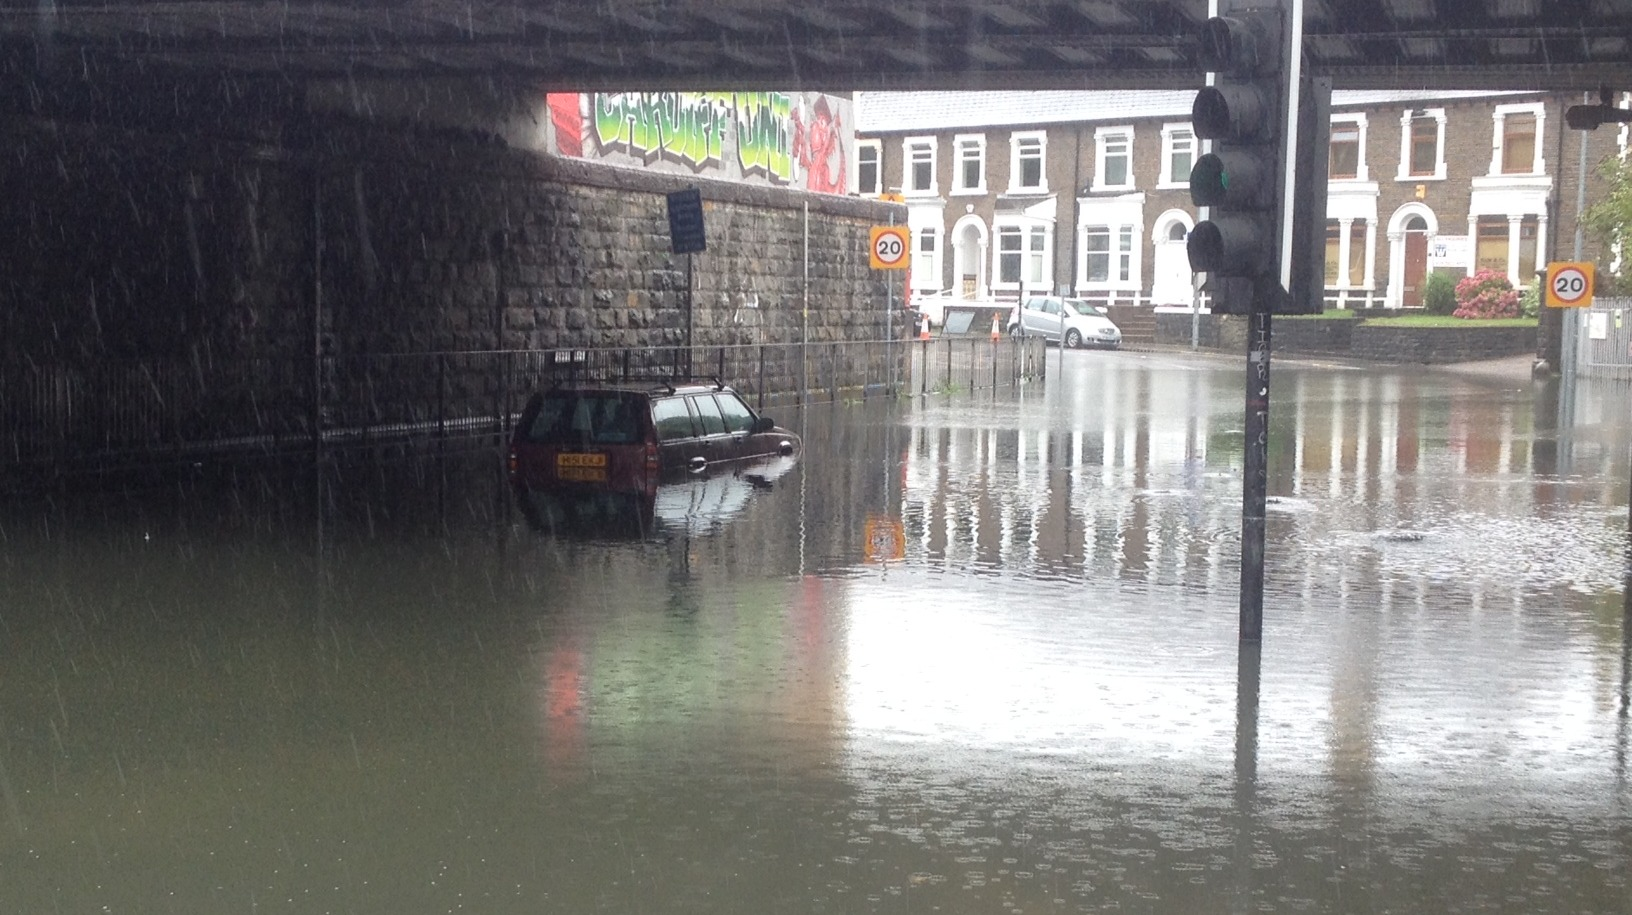 bad weather causes problems for drivers in cardiff